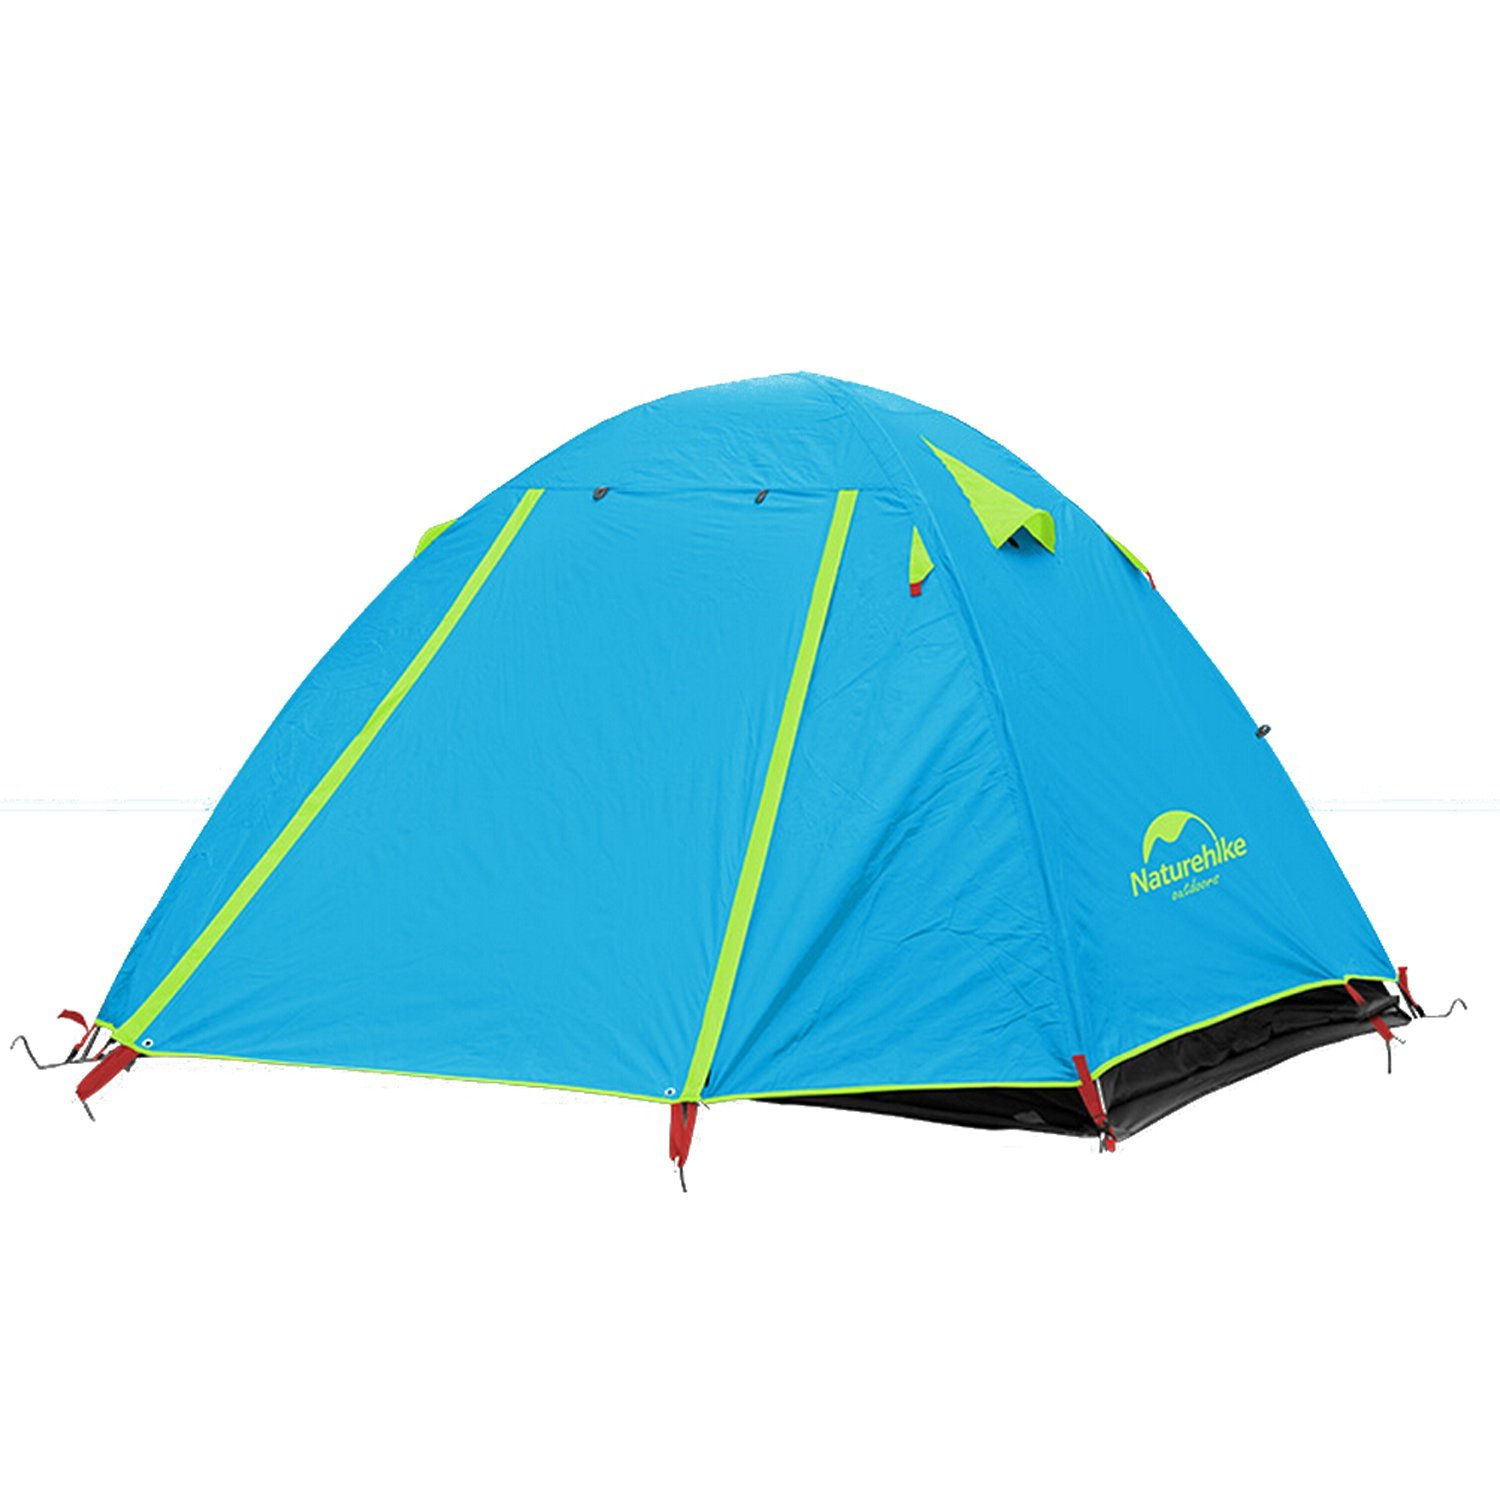 Weanas Double Layer Tent